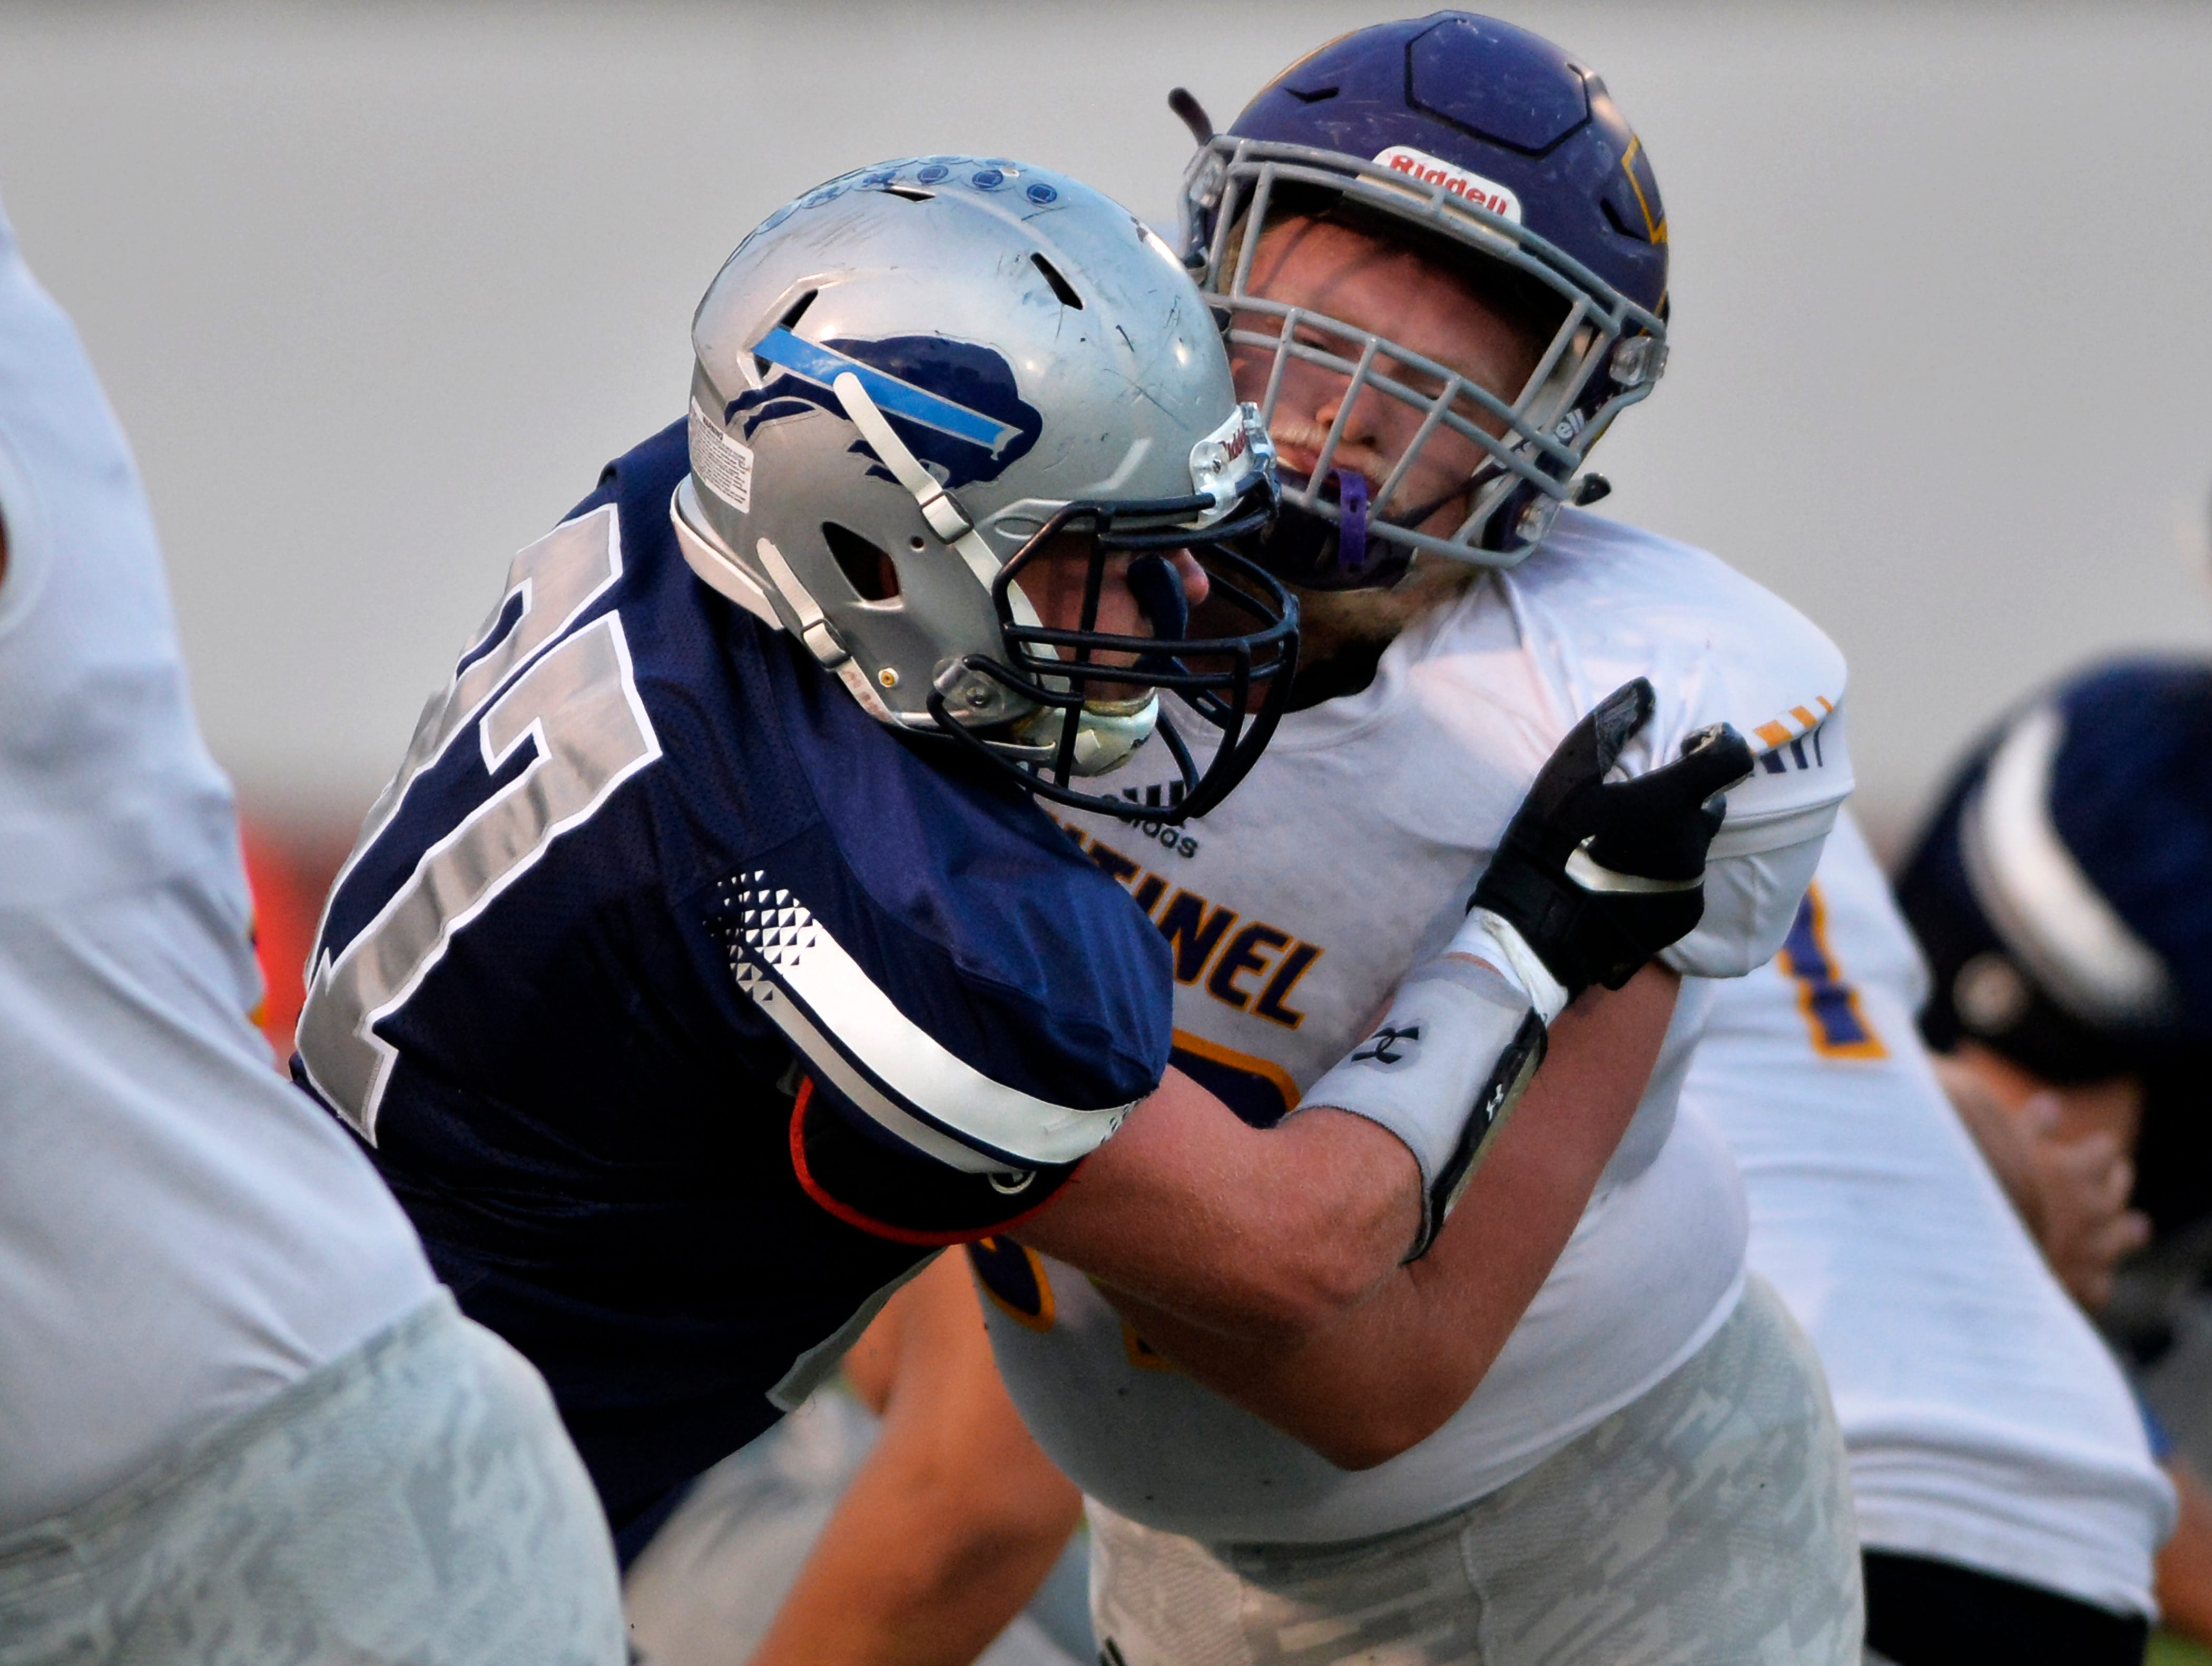 Great Falls High's Lane Vandermars engages a Missoula Sentinel blocker on his way to the quarterback in Friday night's football game at Memorial Stadium, Sept. 7, 2018.